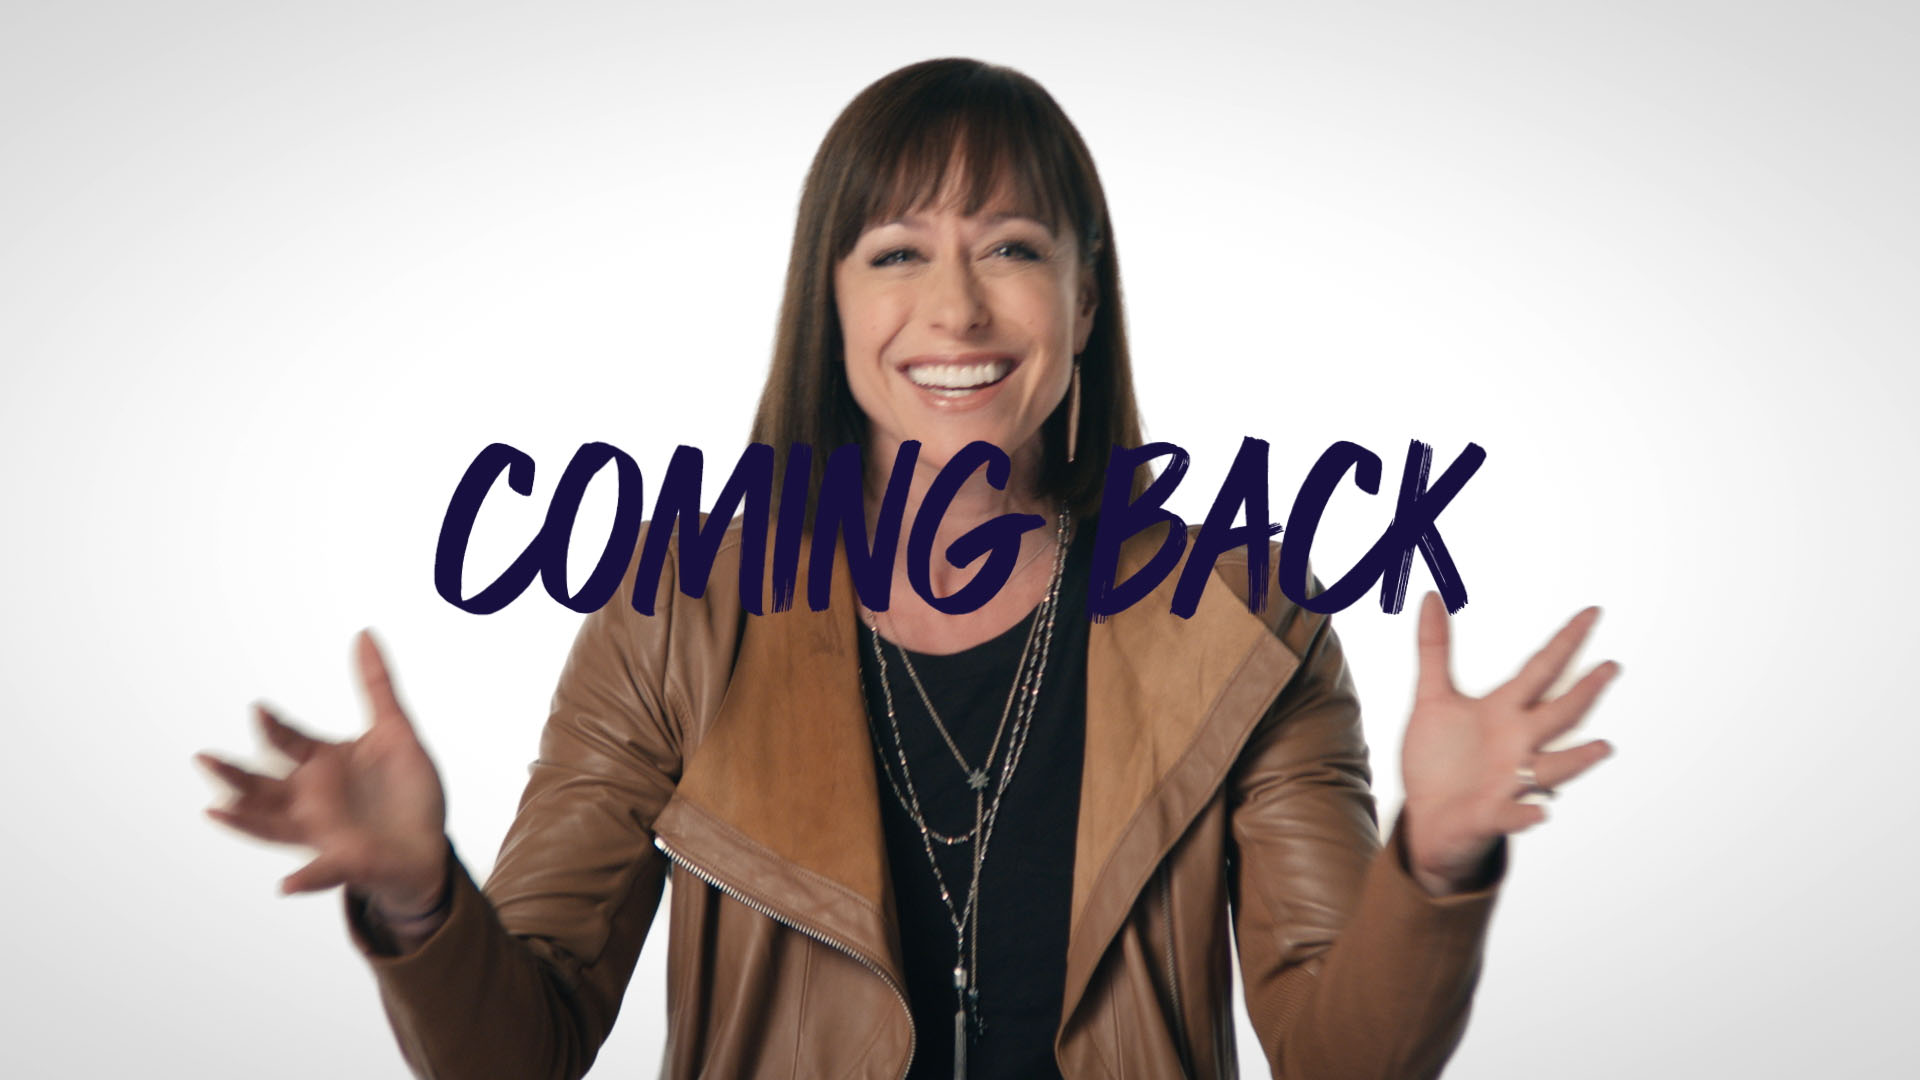 TLC Trading Spaces Youtube Preroll Paige Search 02.jpg